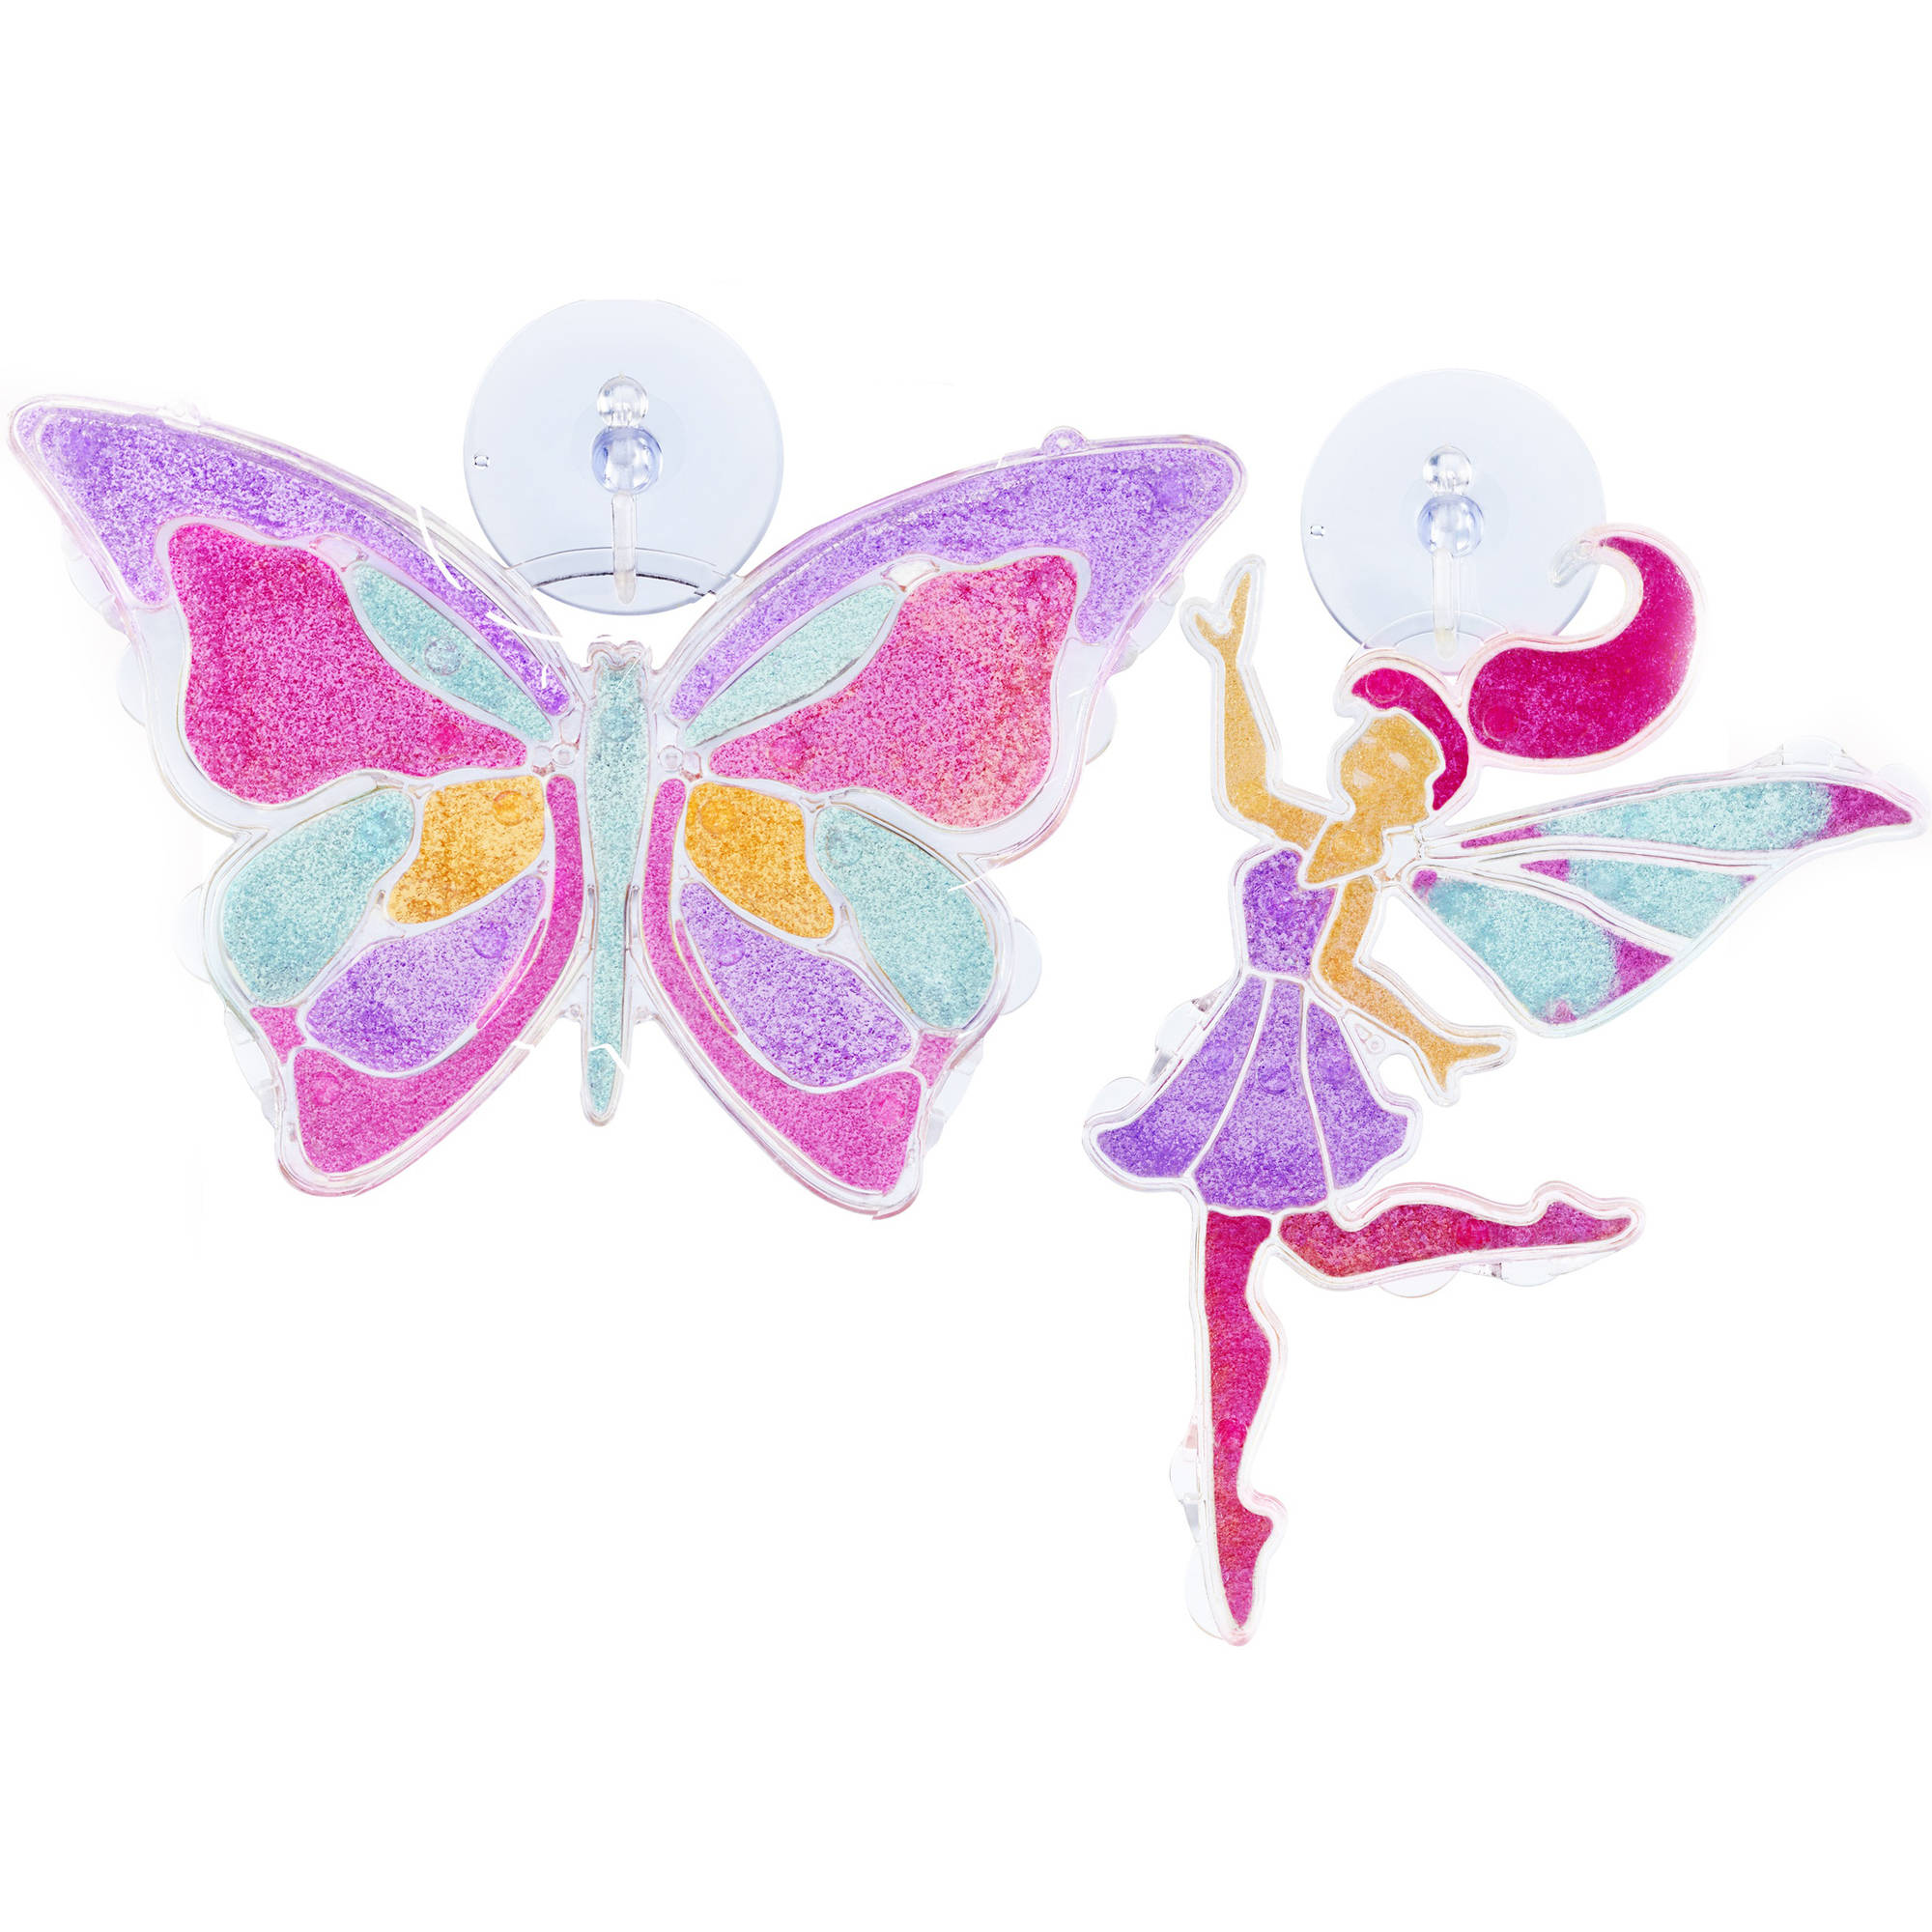 Orbeez Crush 'n Design, Butterfly and Fairy